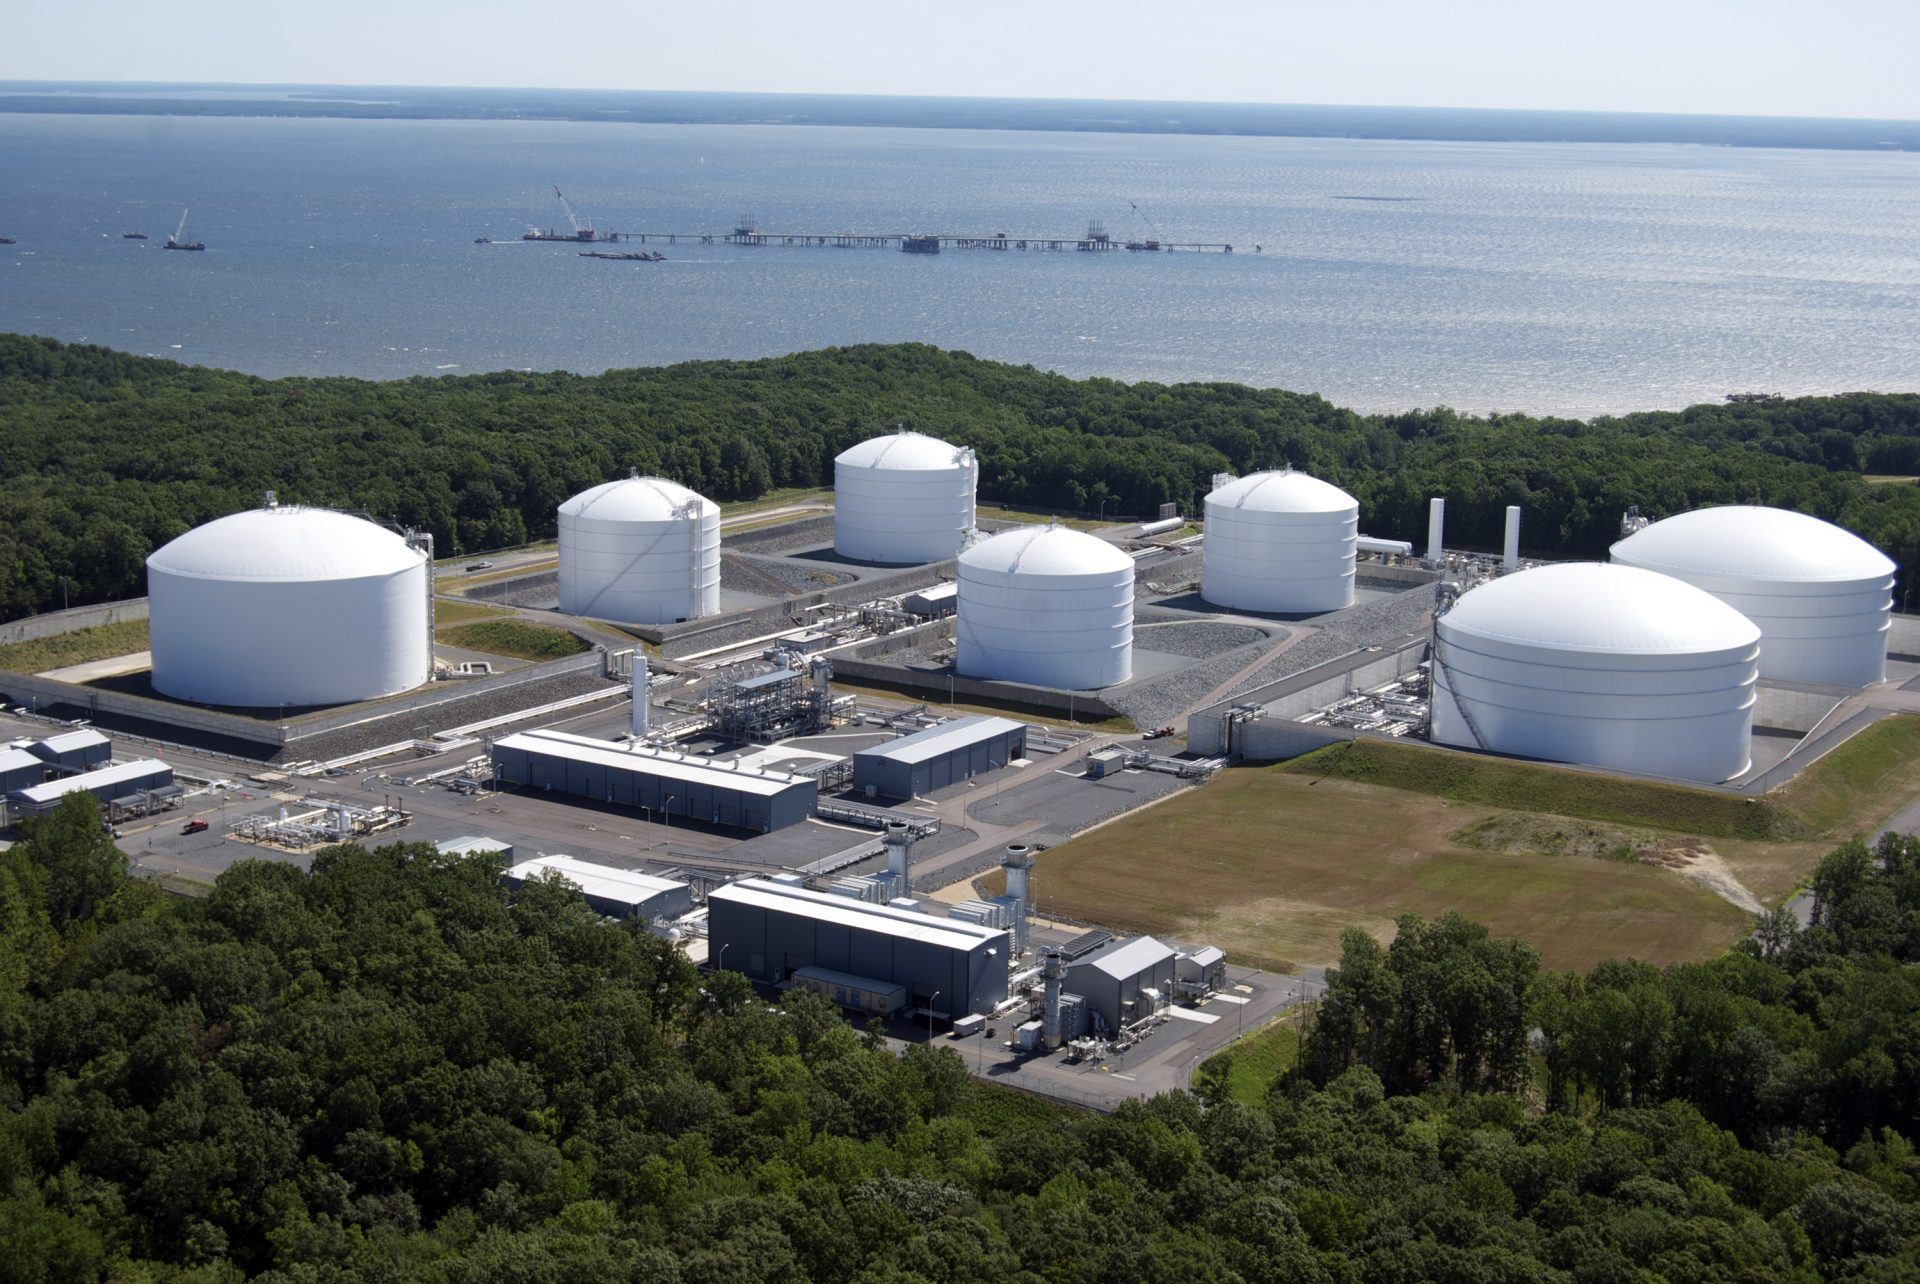 Delaware River Basin commission confirms plan to build LNG